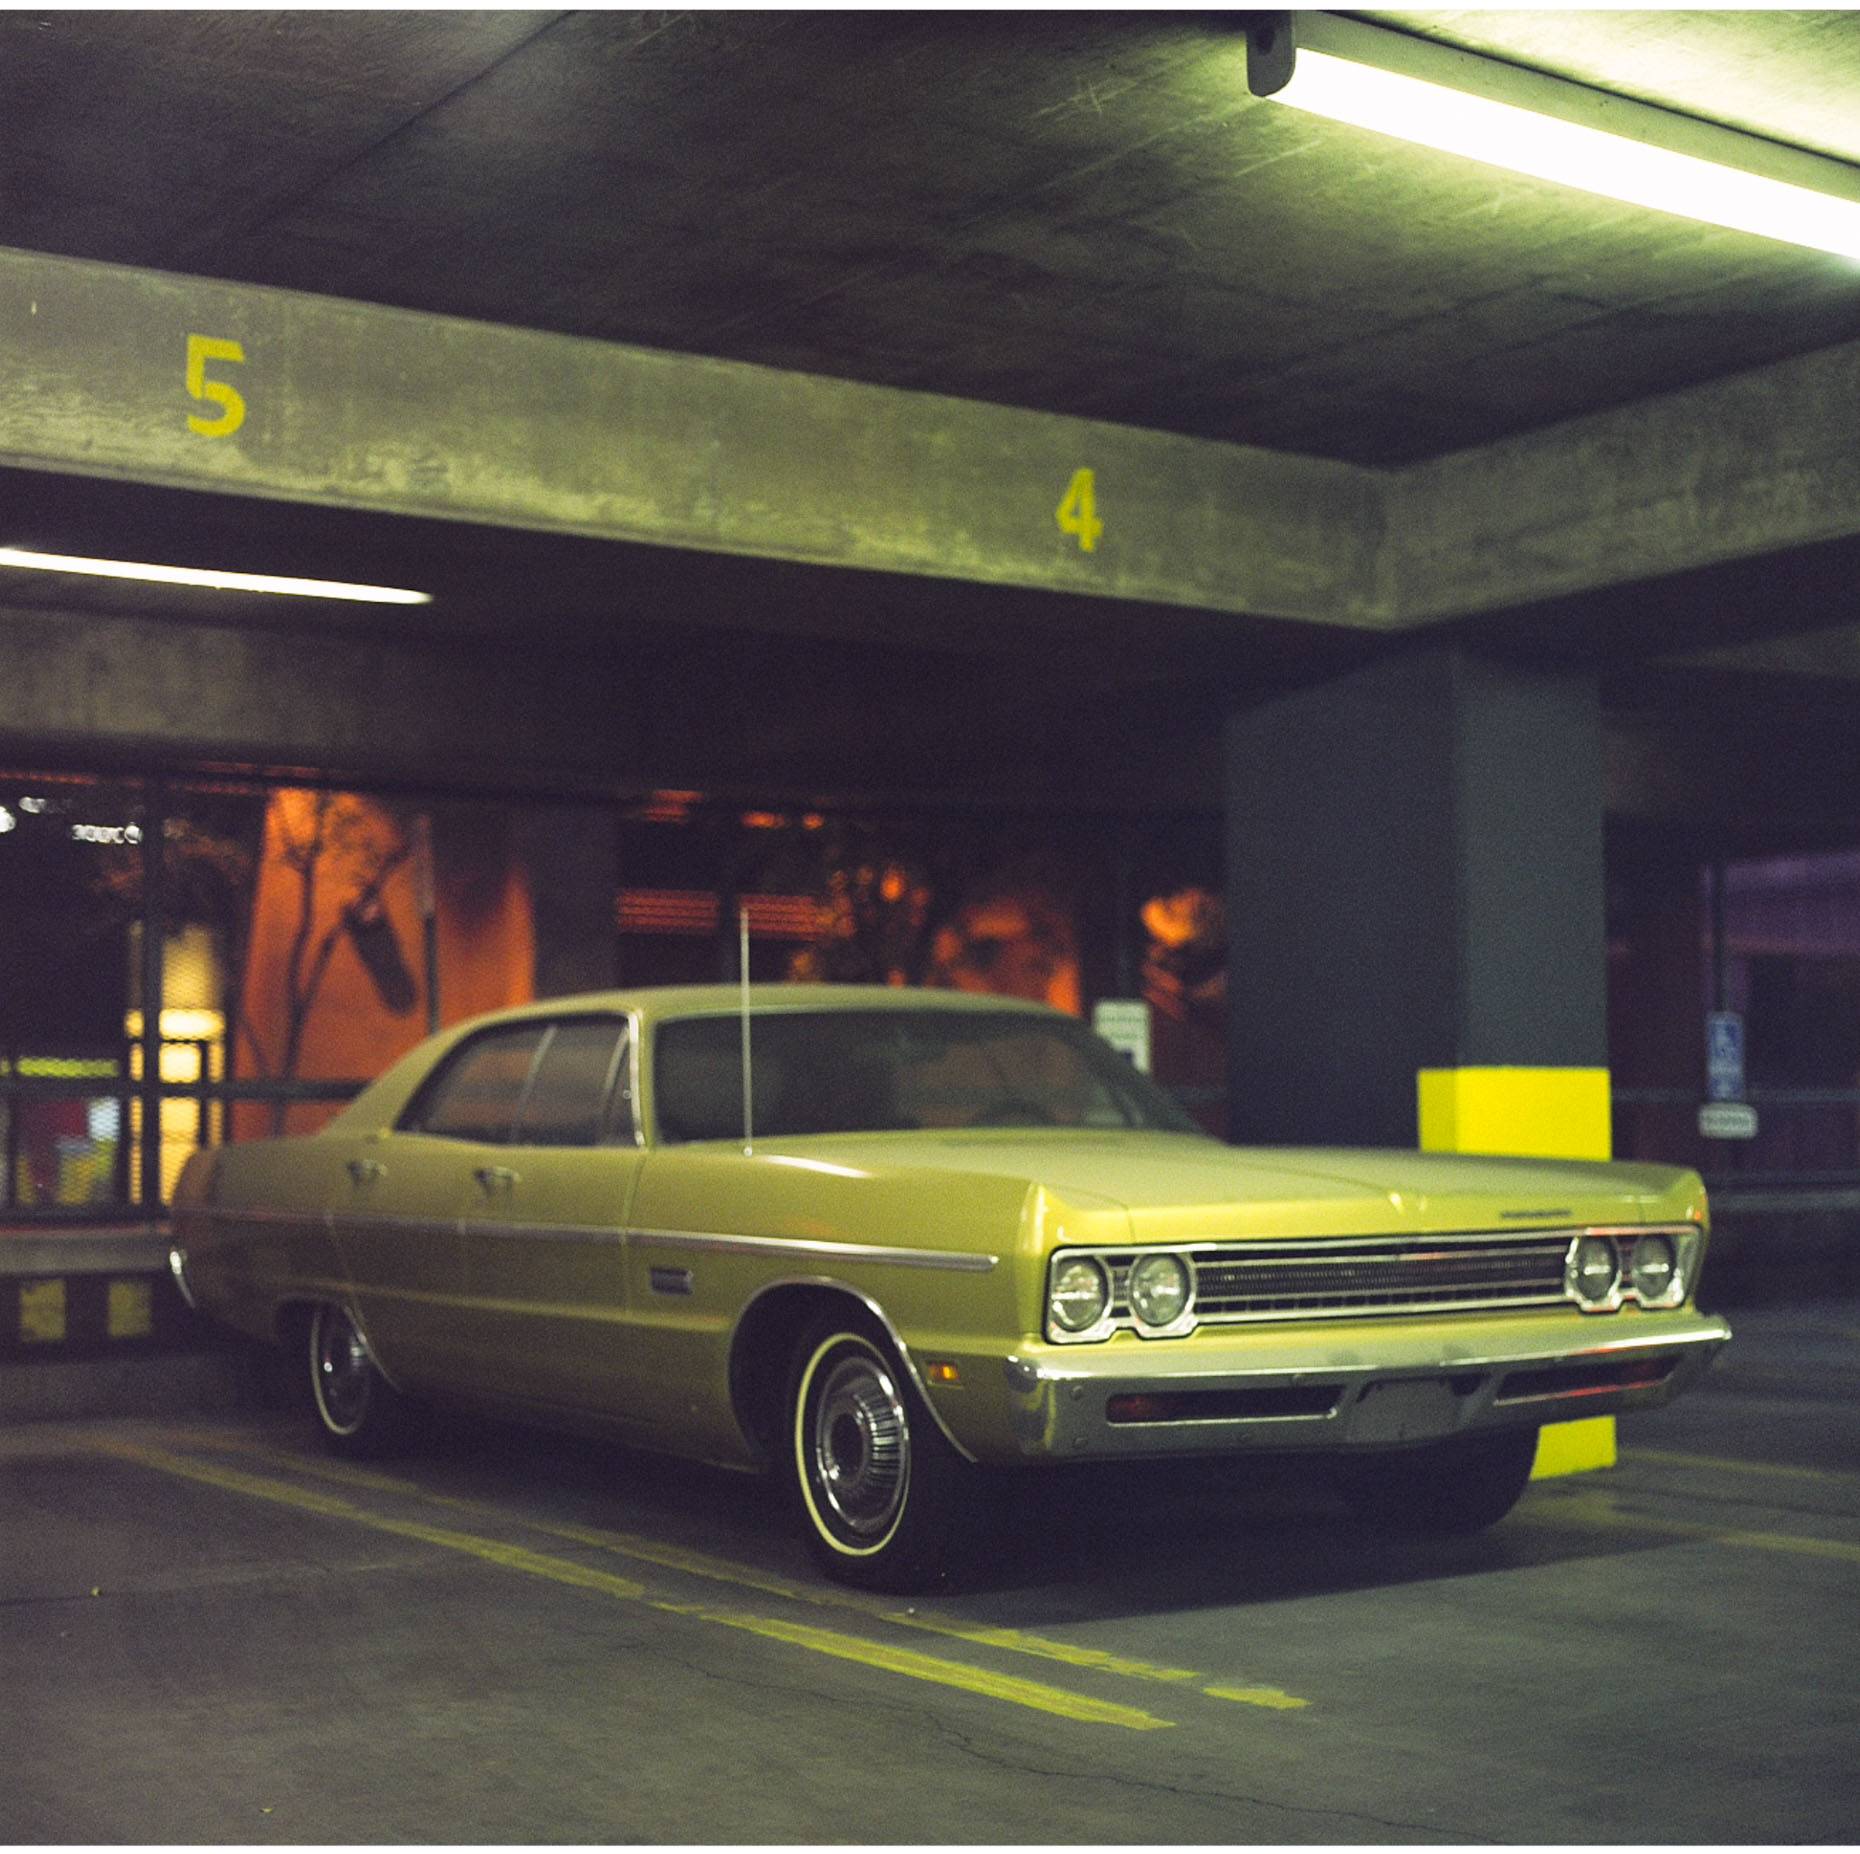 A Plymouth Fury sits in a parking lot in  Albuquerque, New Mexico illuminated by the strip lights above.